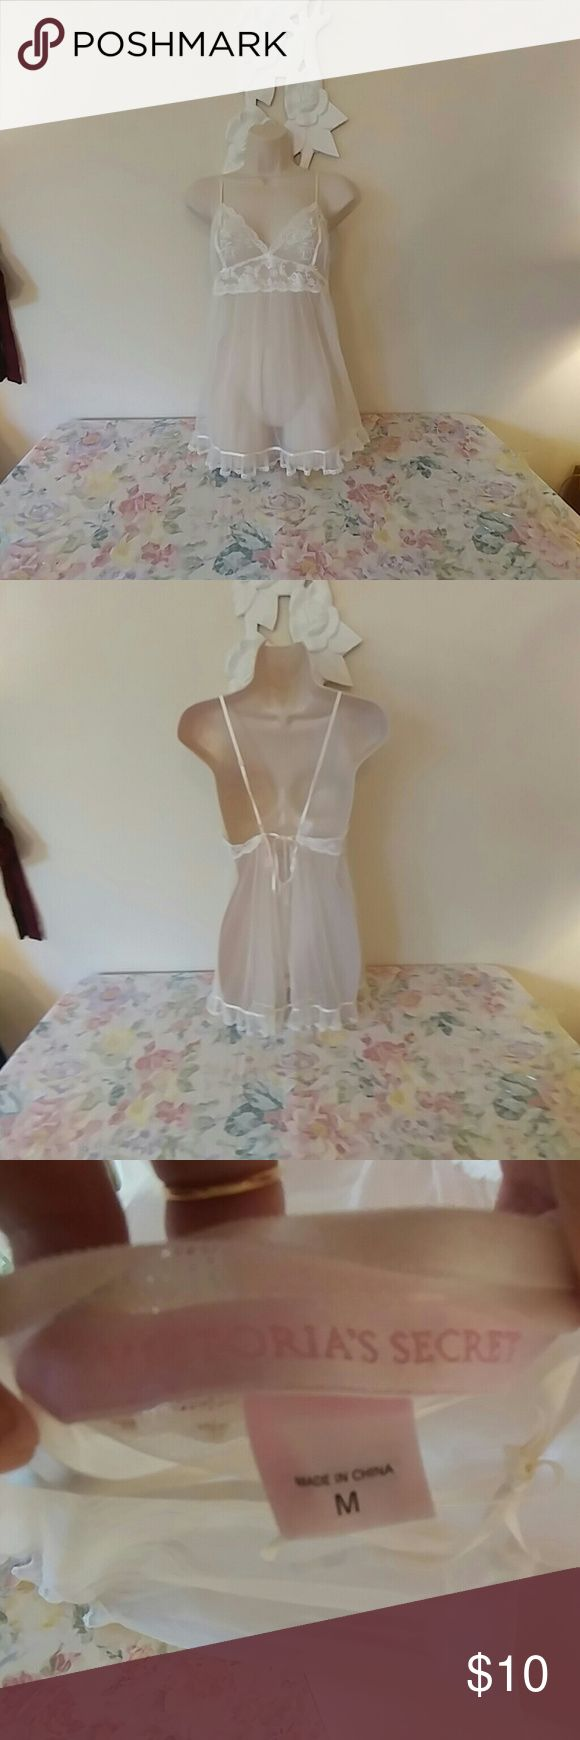 Victoria's Secret sheer lace babydoll nightie Victoria's Secret sheer white lace babydoll nightie, good for a bride on her honeymoon, ties In back, size medium, great condition, no flaws.  Bundle this with any other item priced $10 and get them both for $15 (or bundle with 2 more $10 items and get all 3 for $20).  Just bundle and use the offer button!  Price firm unless bundled. Thanks! Victoria's Secret Intimates & Sleepwear